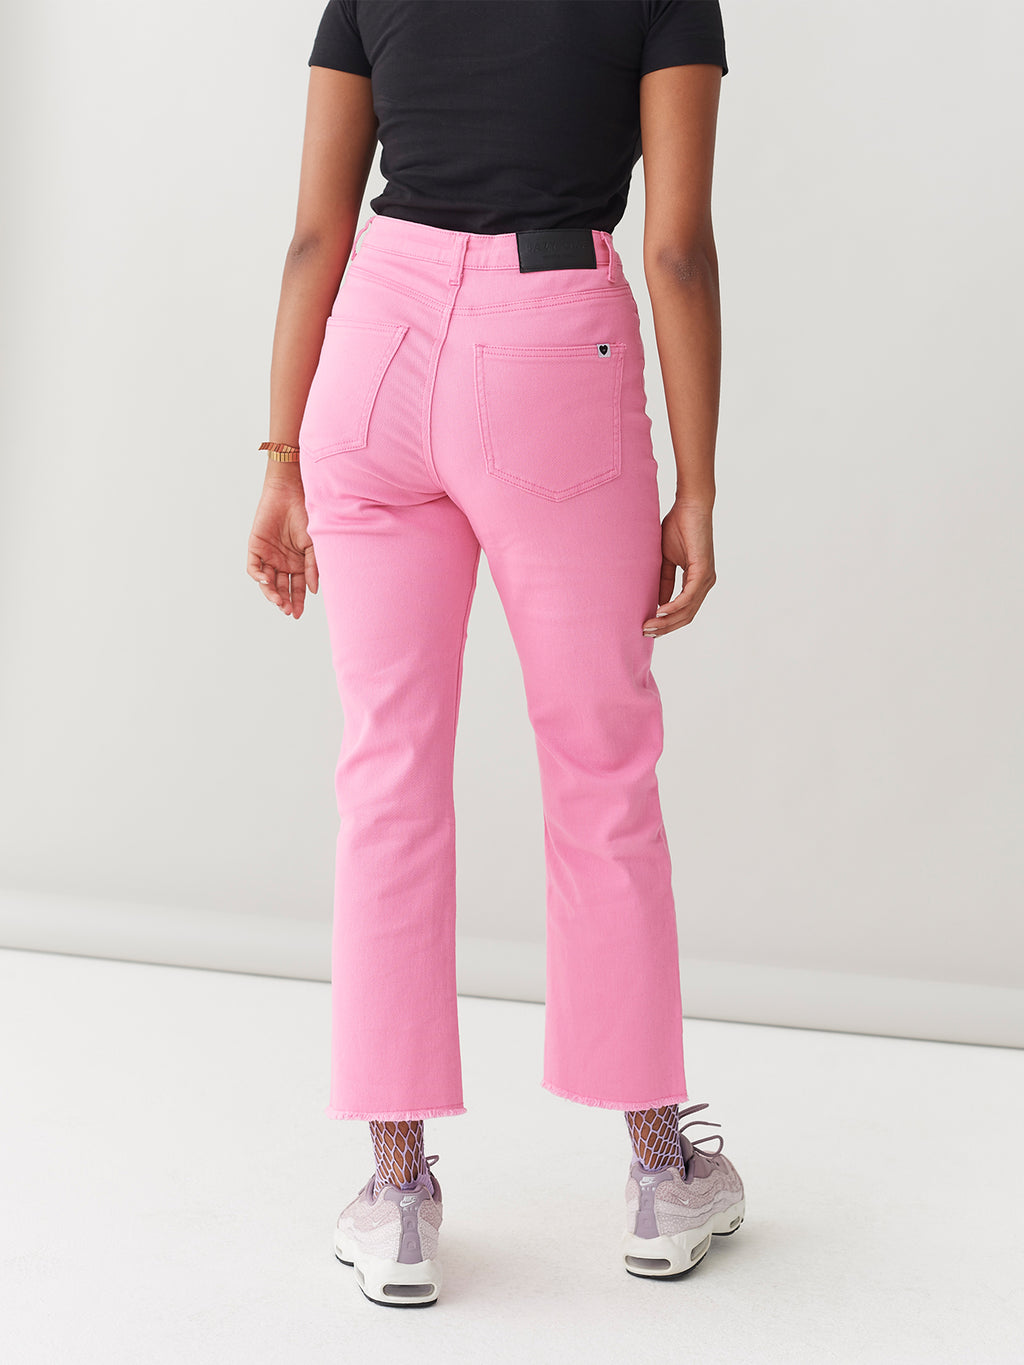 LO Pink Straight Leg Jeans